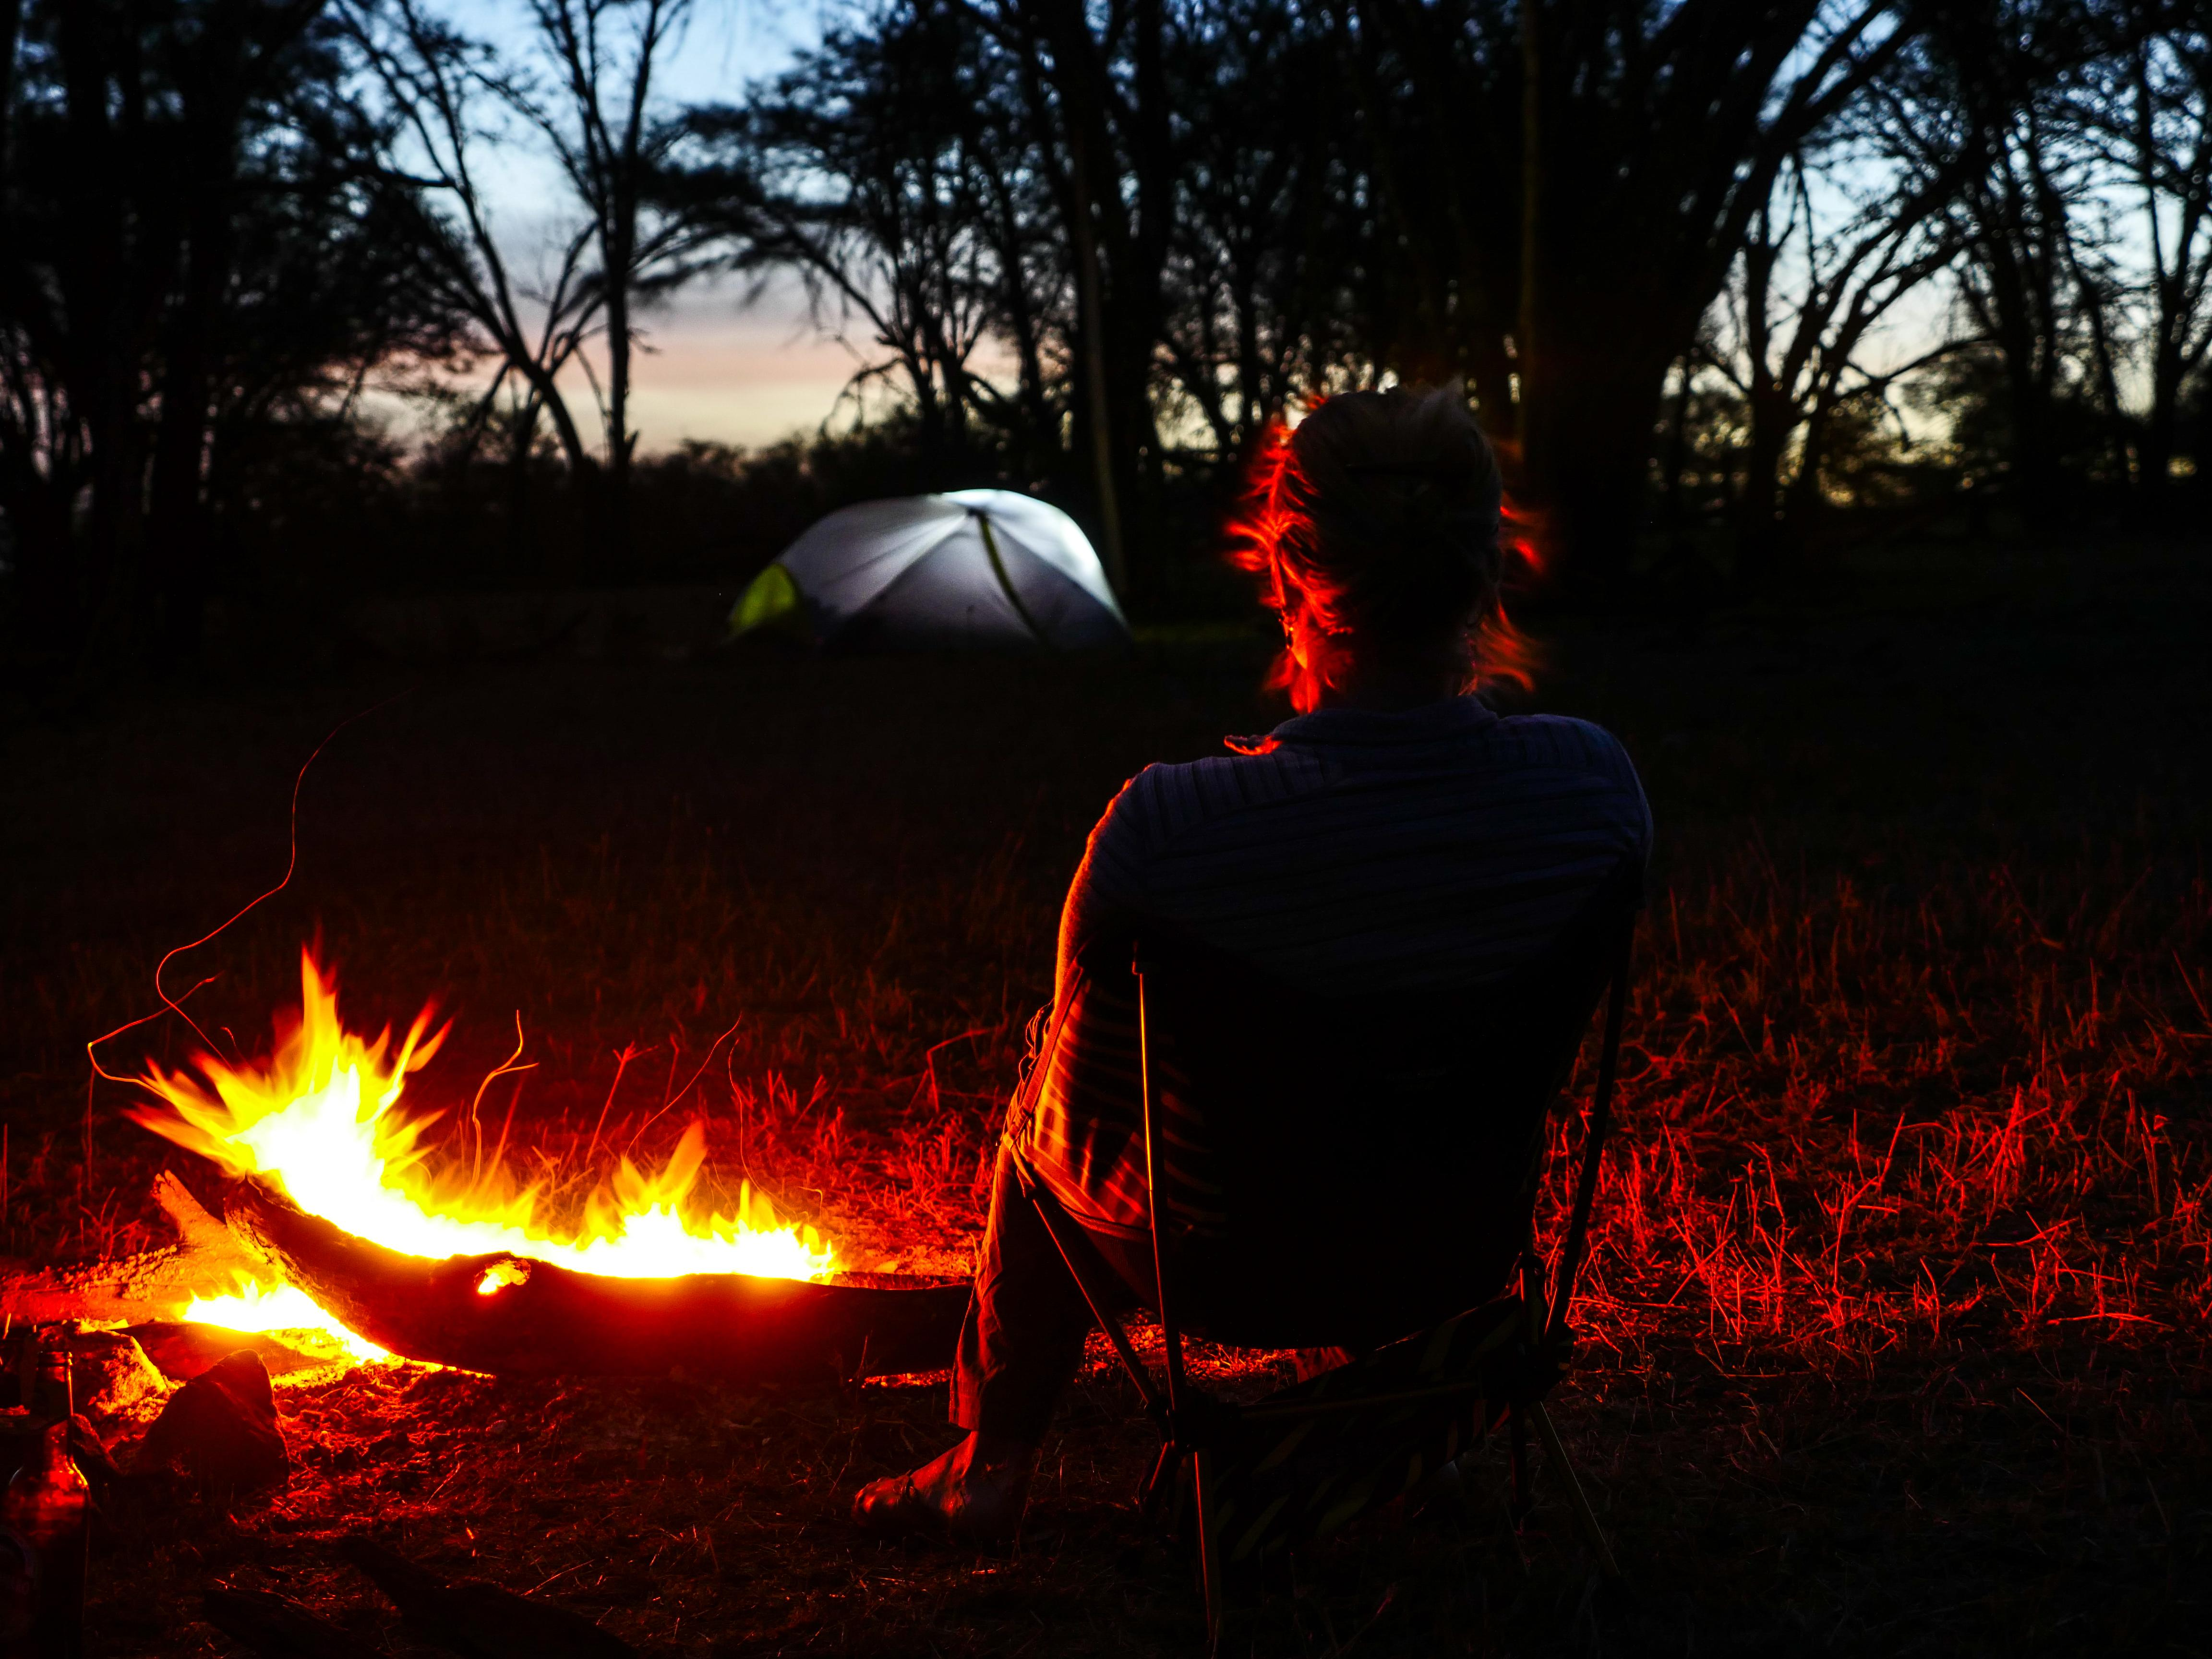 WAYO-Trekking-Fly-Camp-Safari-evening-campfire.JPG#asset:116606